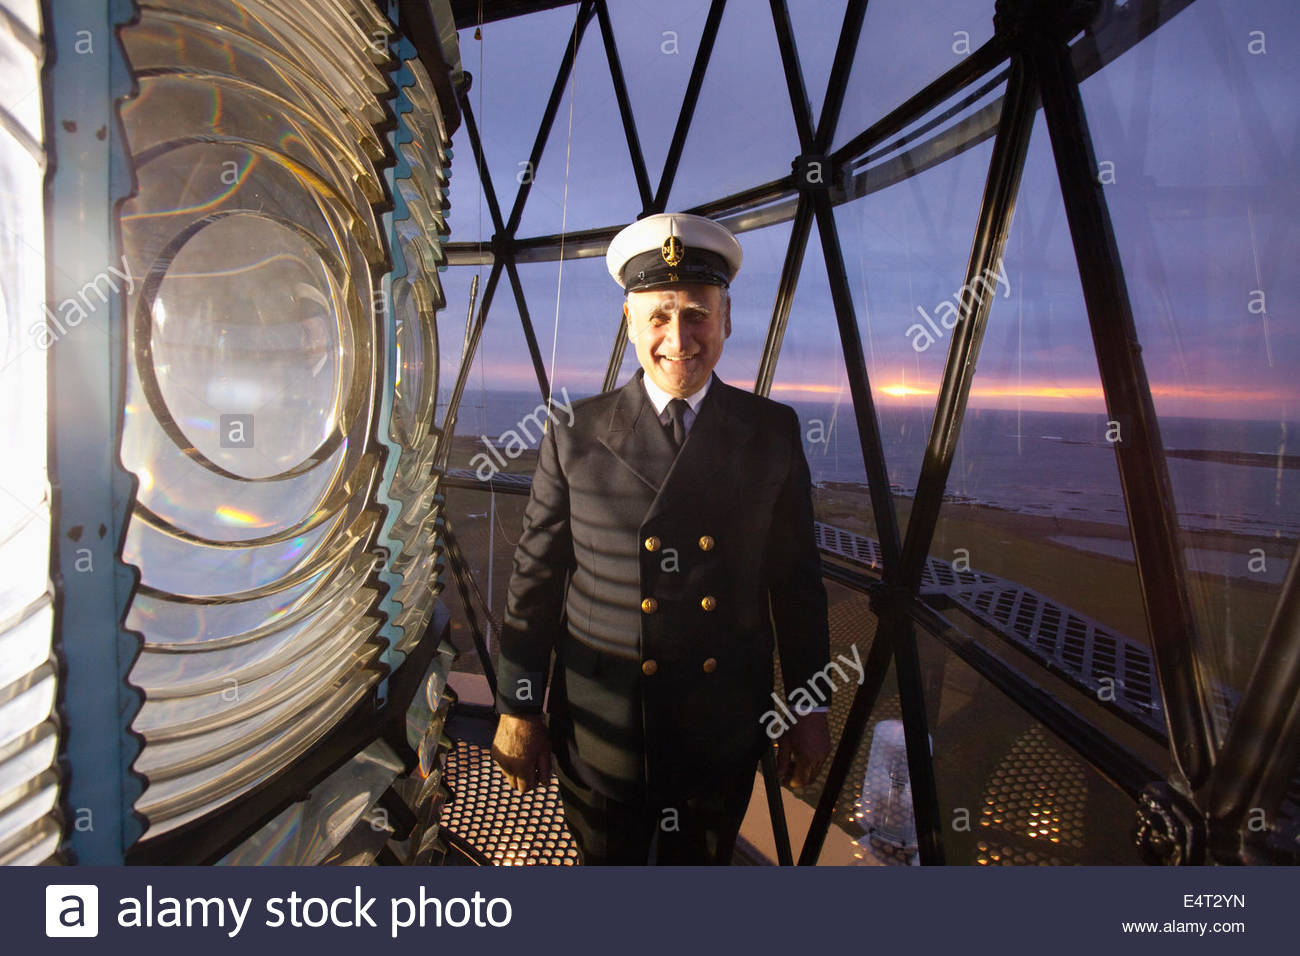 The lighthouse keeper stands by the lens of the North Ronaldsay Lighthouse, North Ronaldsay, Orkney, Scotland. - Stock Image